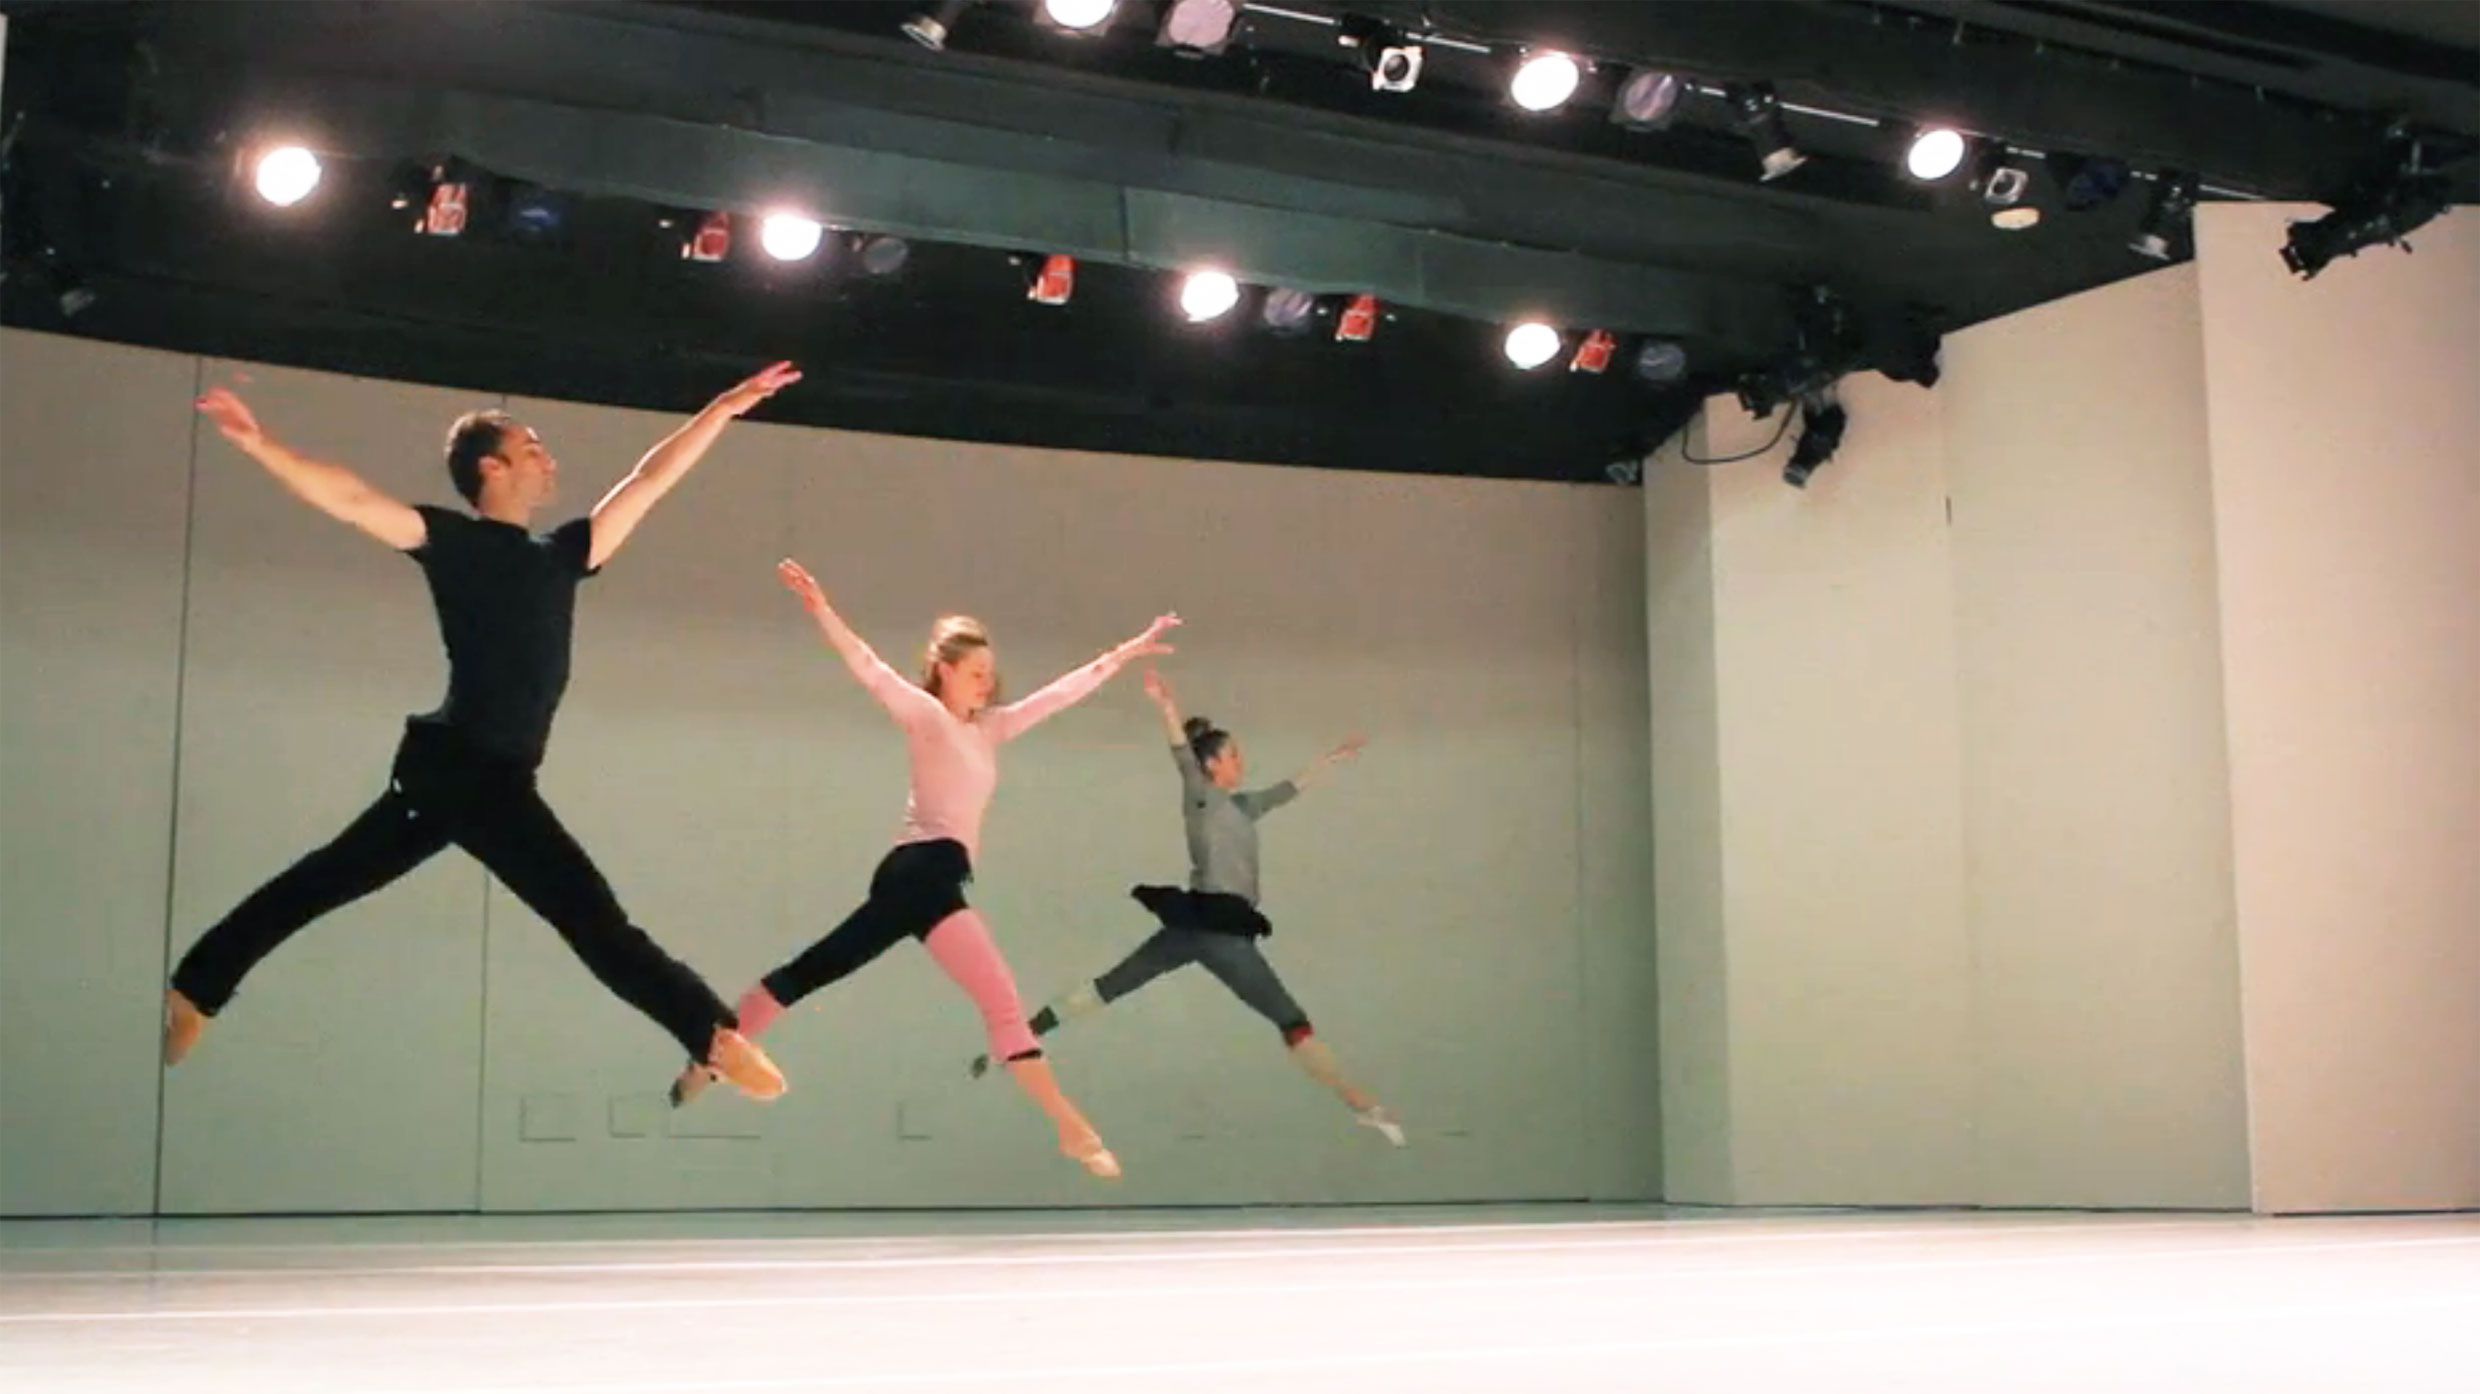 Dancers leaping across a stage. Photo: Jacklyn Meduga